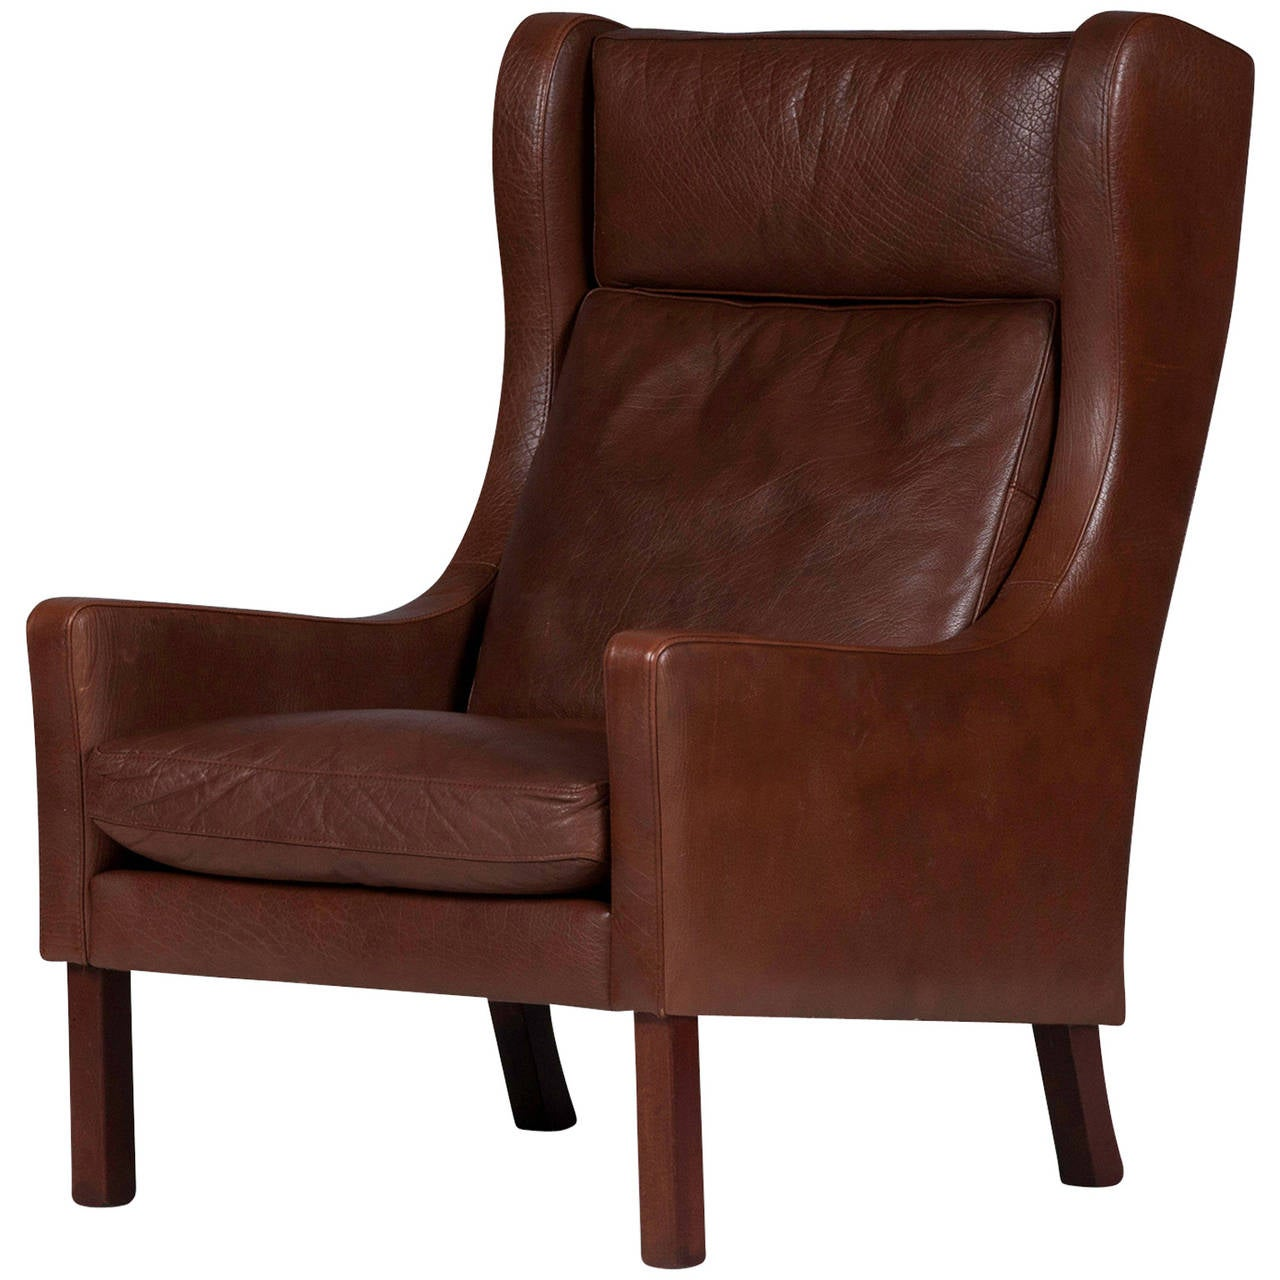 1960s Missoni Wingback Chair At 1stdibs: Vintage Danish Wingback Armchair In Dark Brown Leather